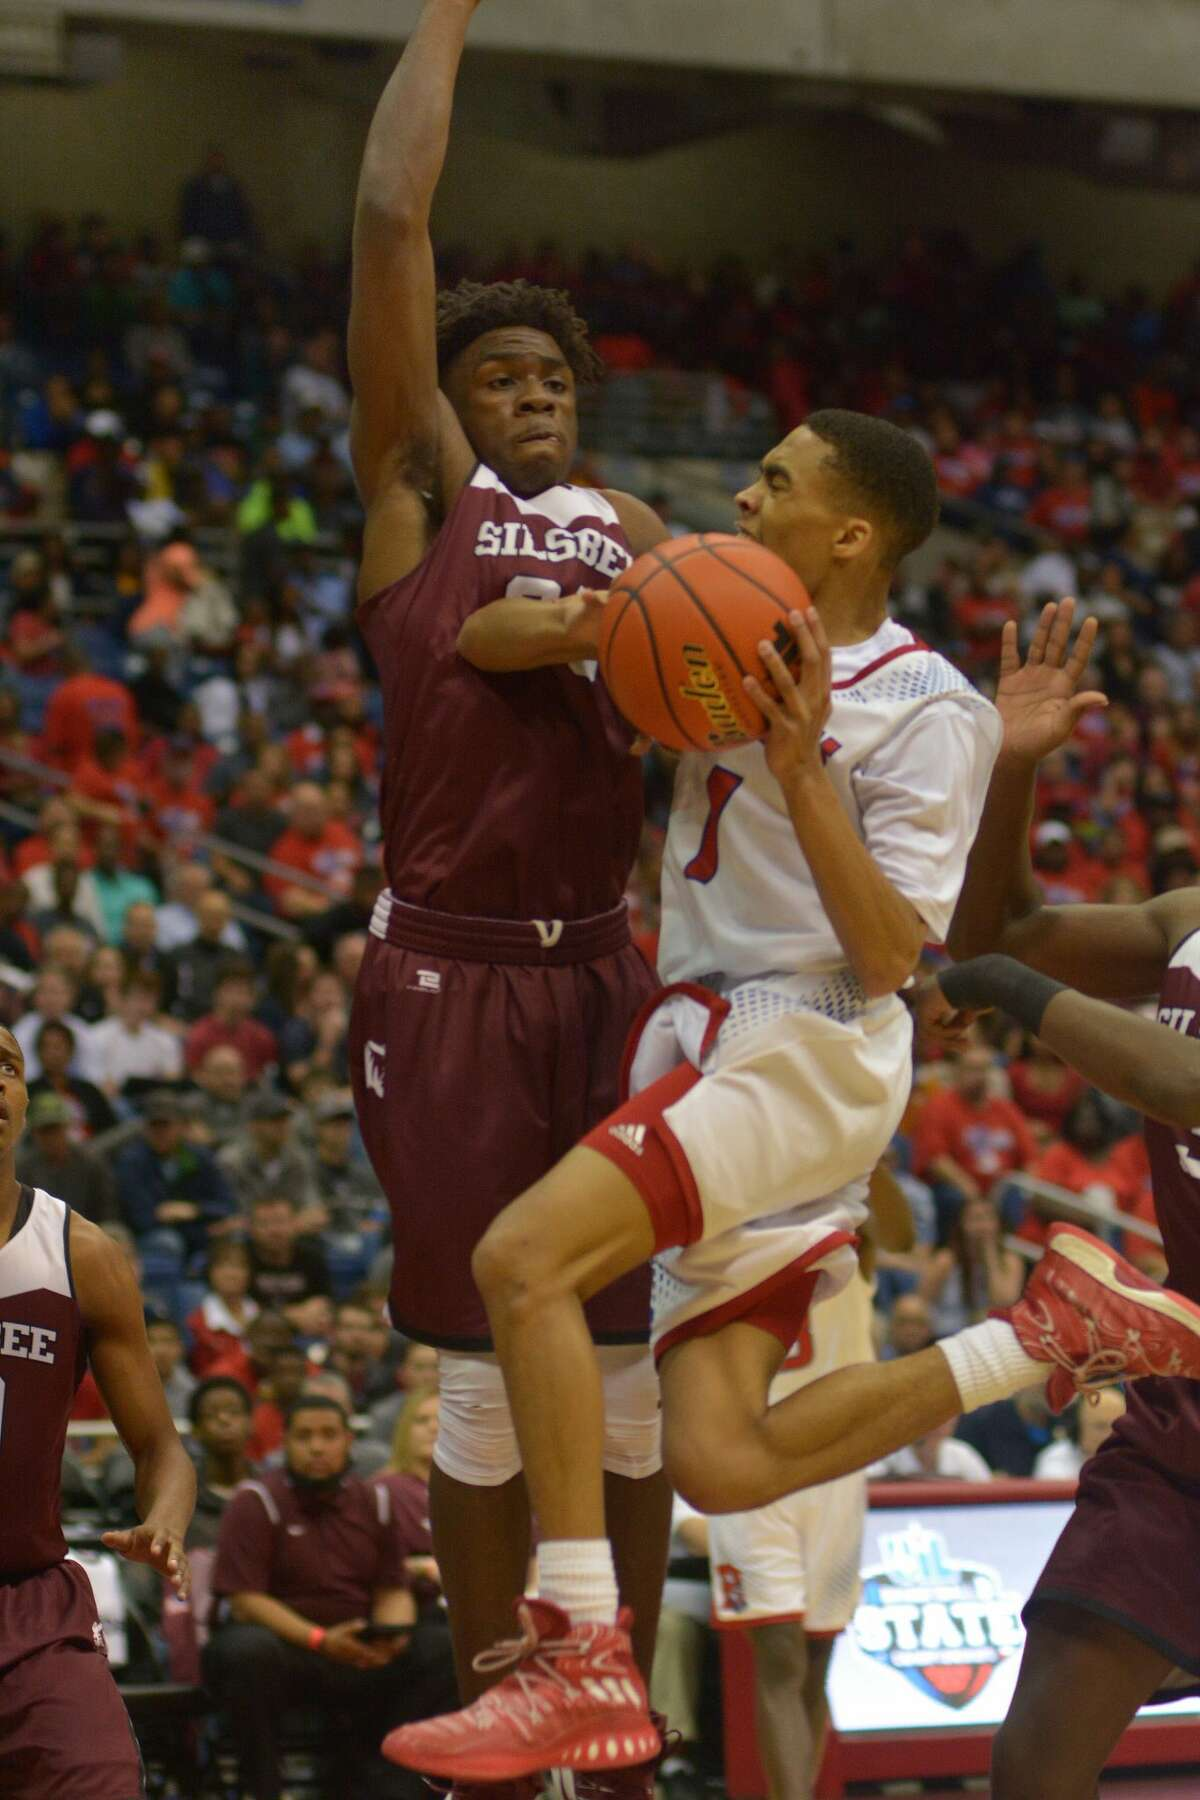 Brazosport senior guard Chris Rossow (1) drives to the basket against Silsbee junior forward Kalon Barnes during the first quarter of their Class 4A state final at the Alamodome in San Antonio on Saturday, March 11, 2017. (Photo by Jerry Baker/Freelance)